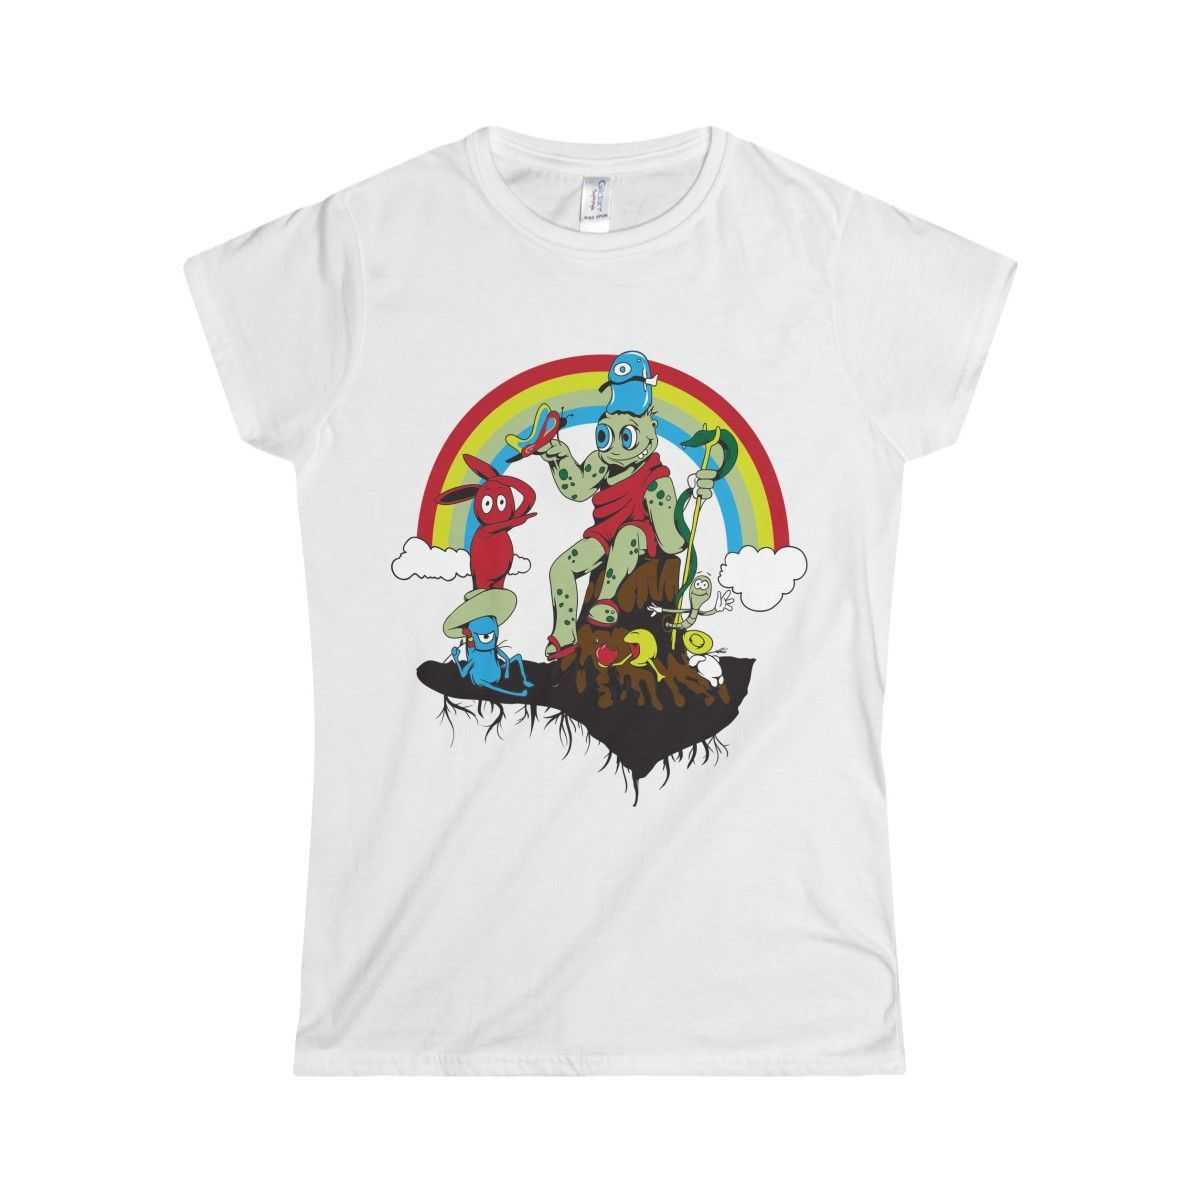 Softstyle Womens TShirt Shirts Vinyls And Products - Custom vinyl decals for t shirt printing